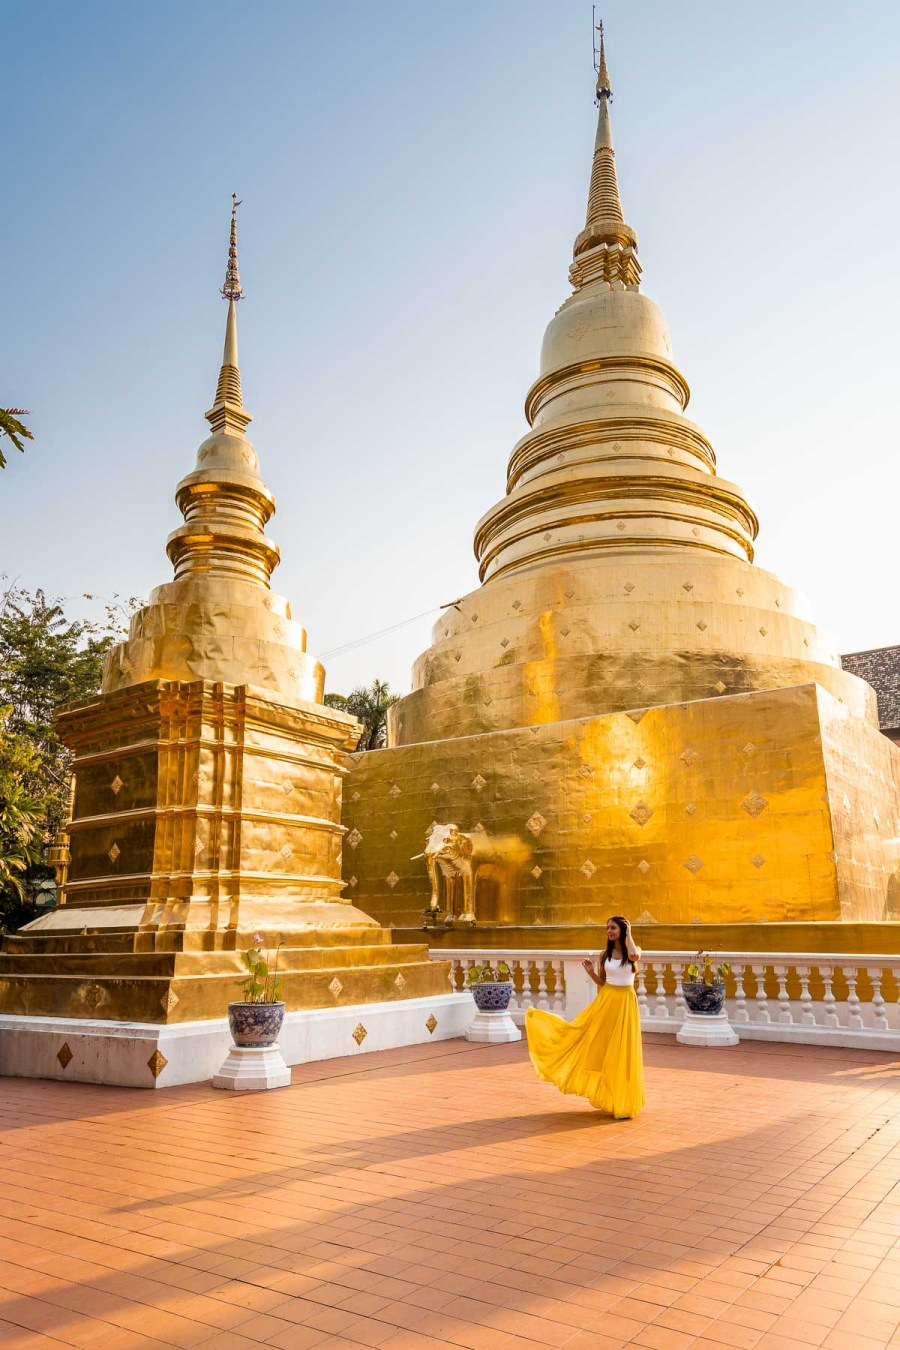 Girl in a yellow skirt in front of the golden stupas at Wat Phra Singh Temple in Chiang Mai